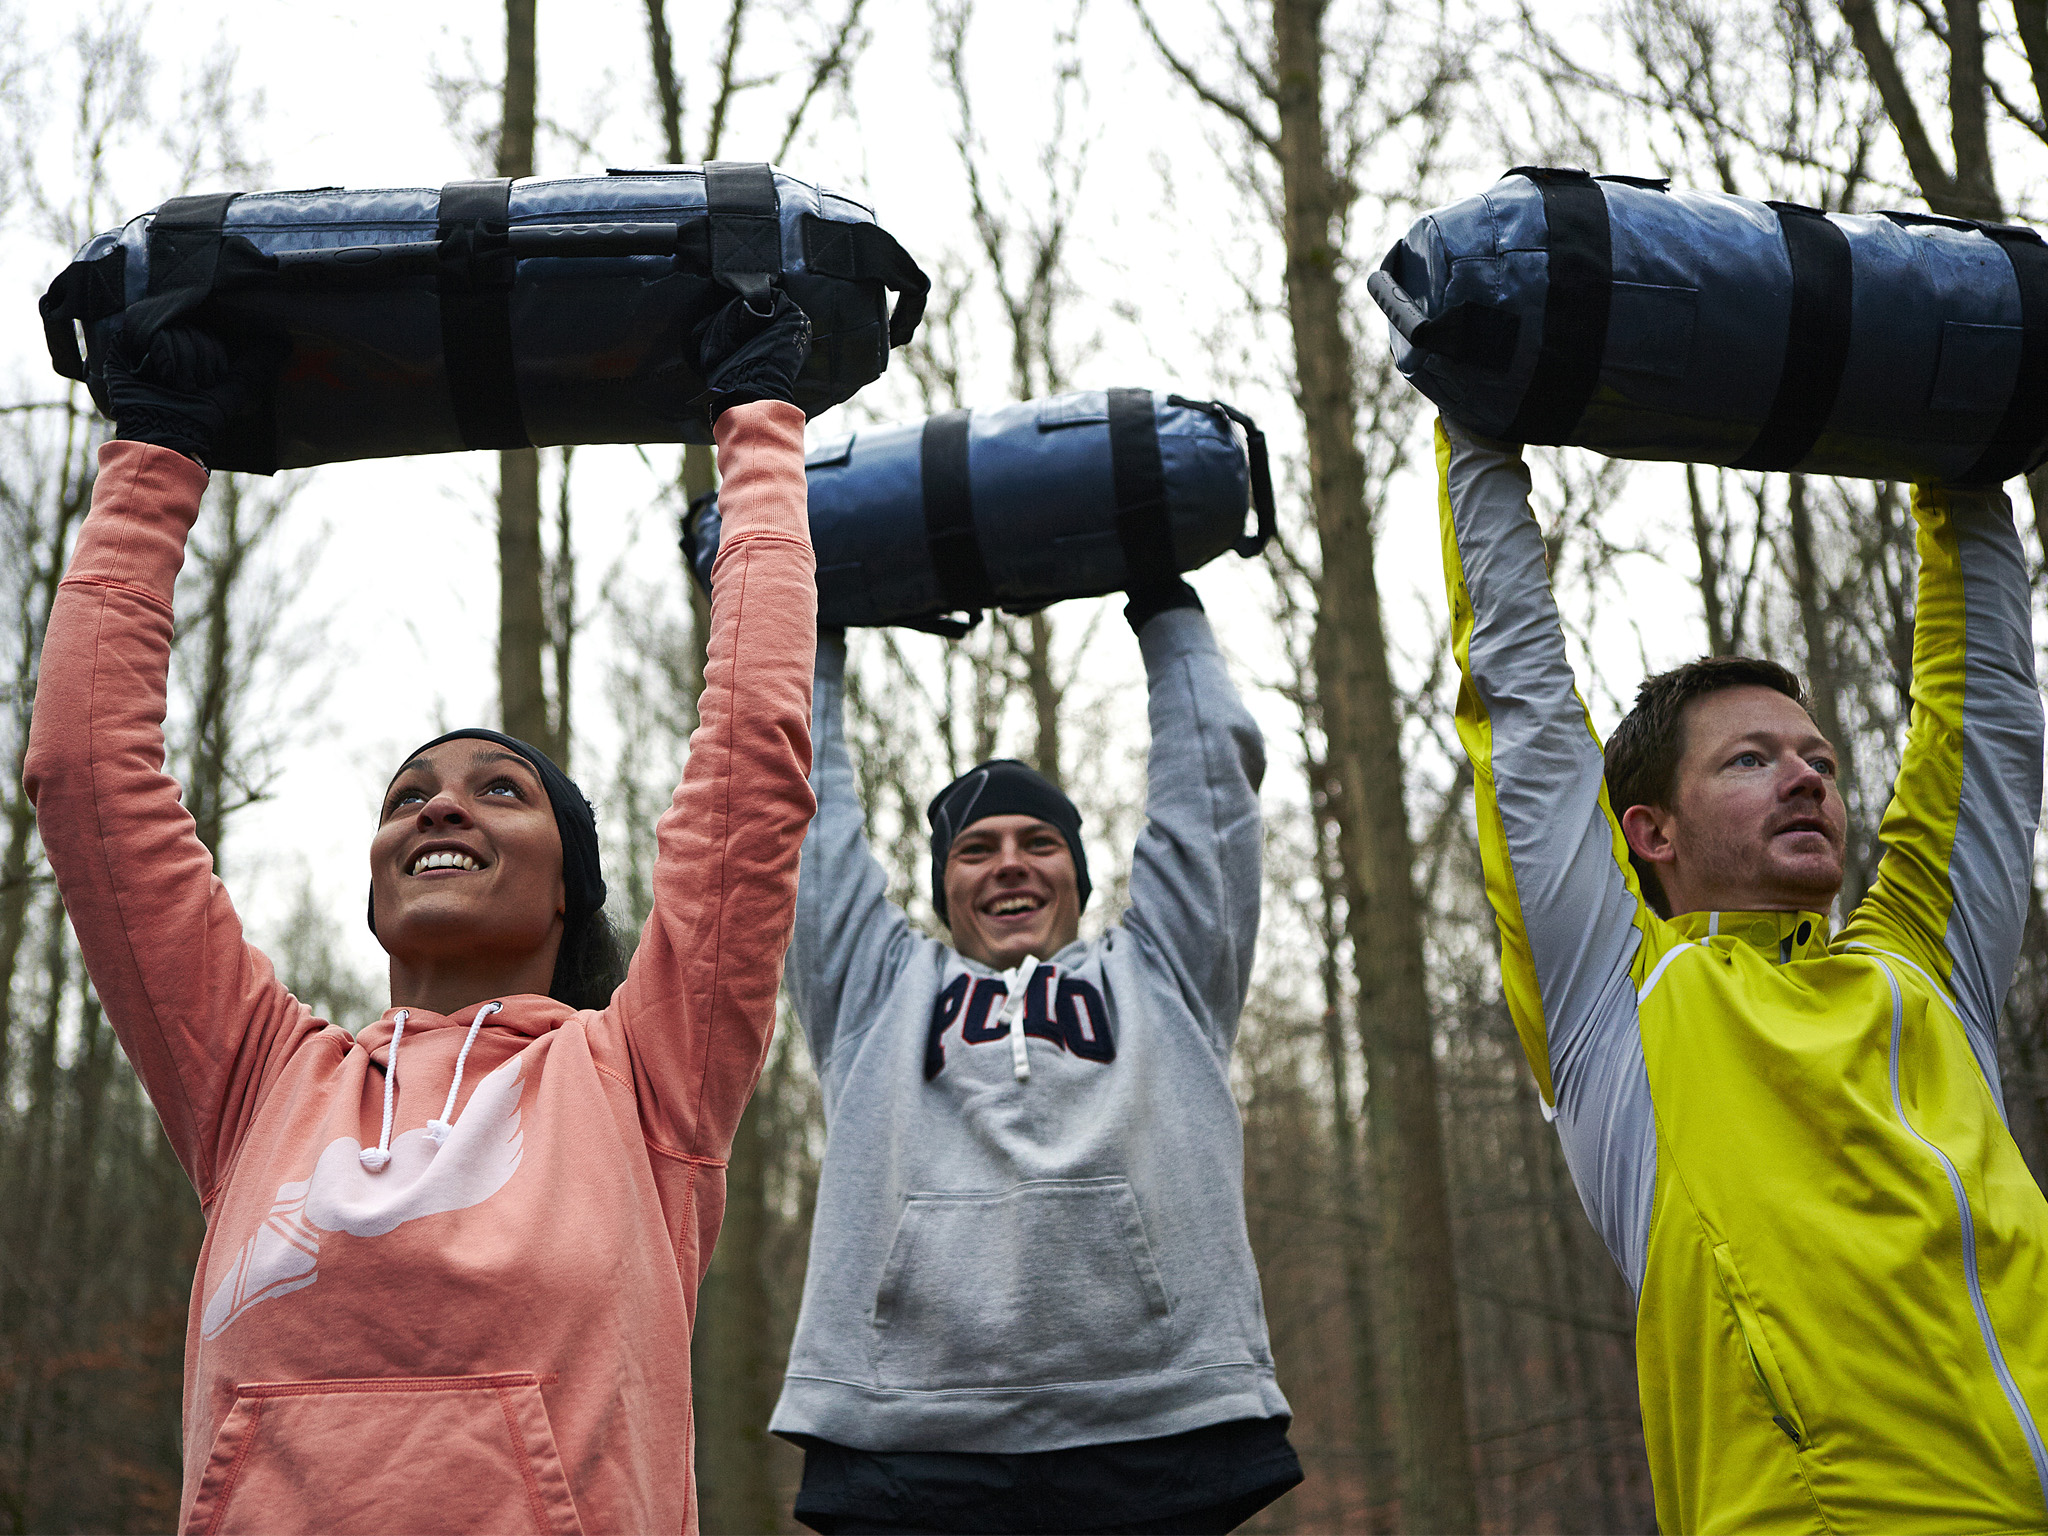 Outdoor training TRX 2.jpg